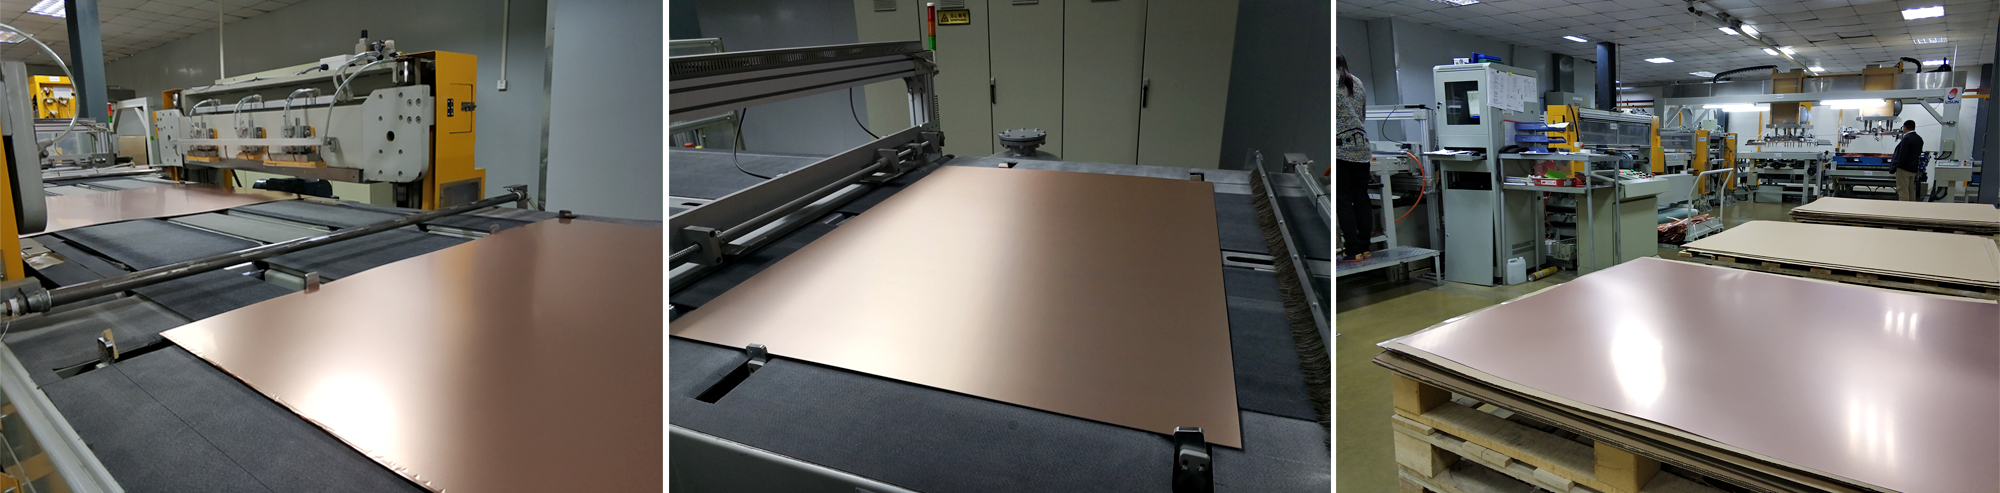 Copper Clad Laminate Sheet